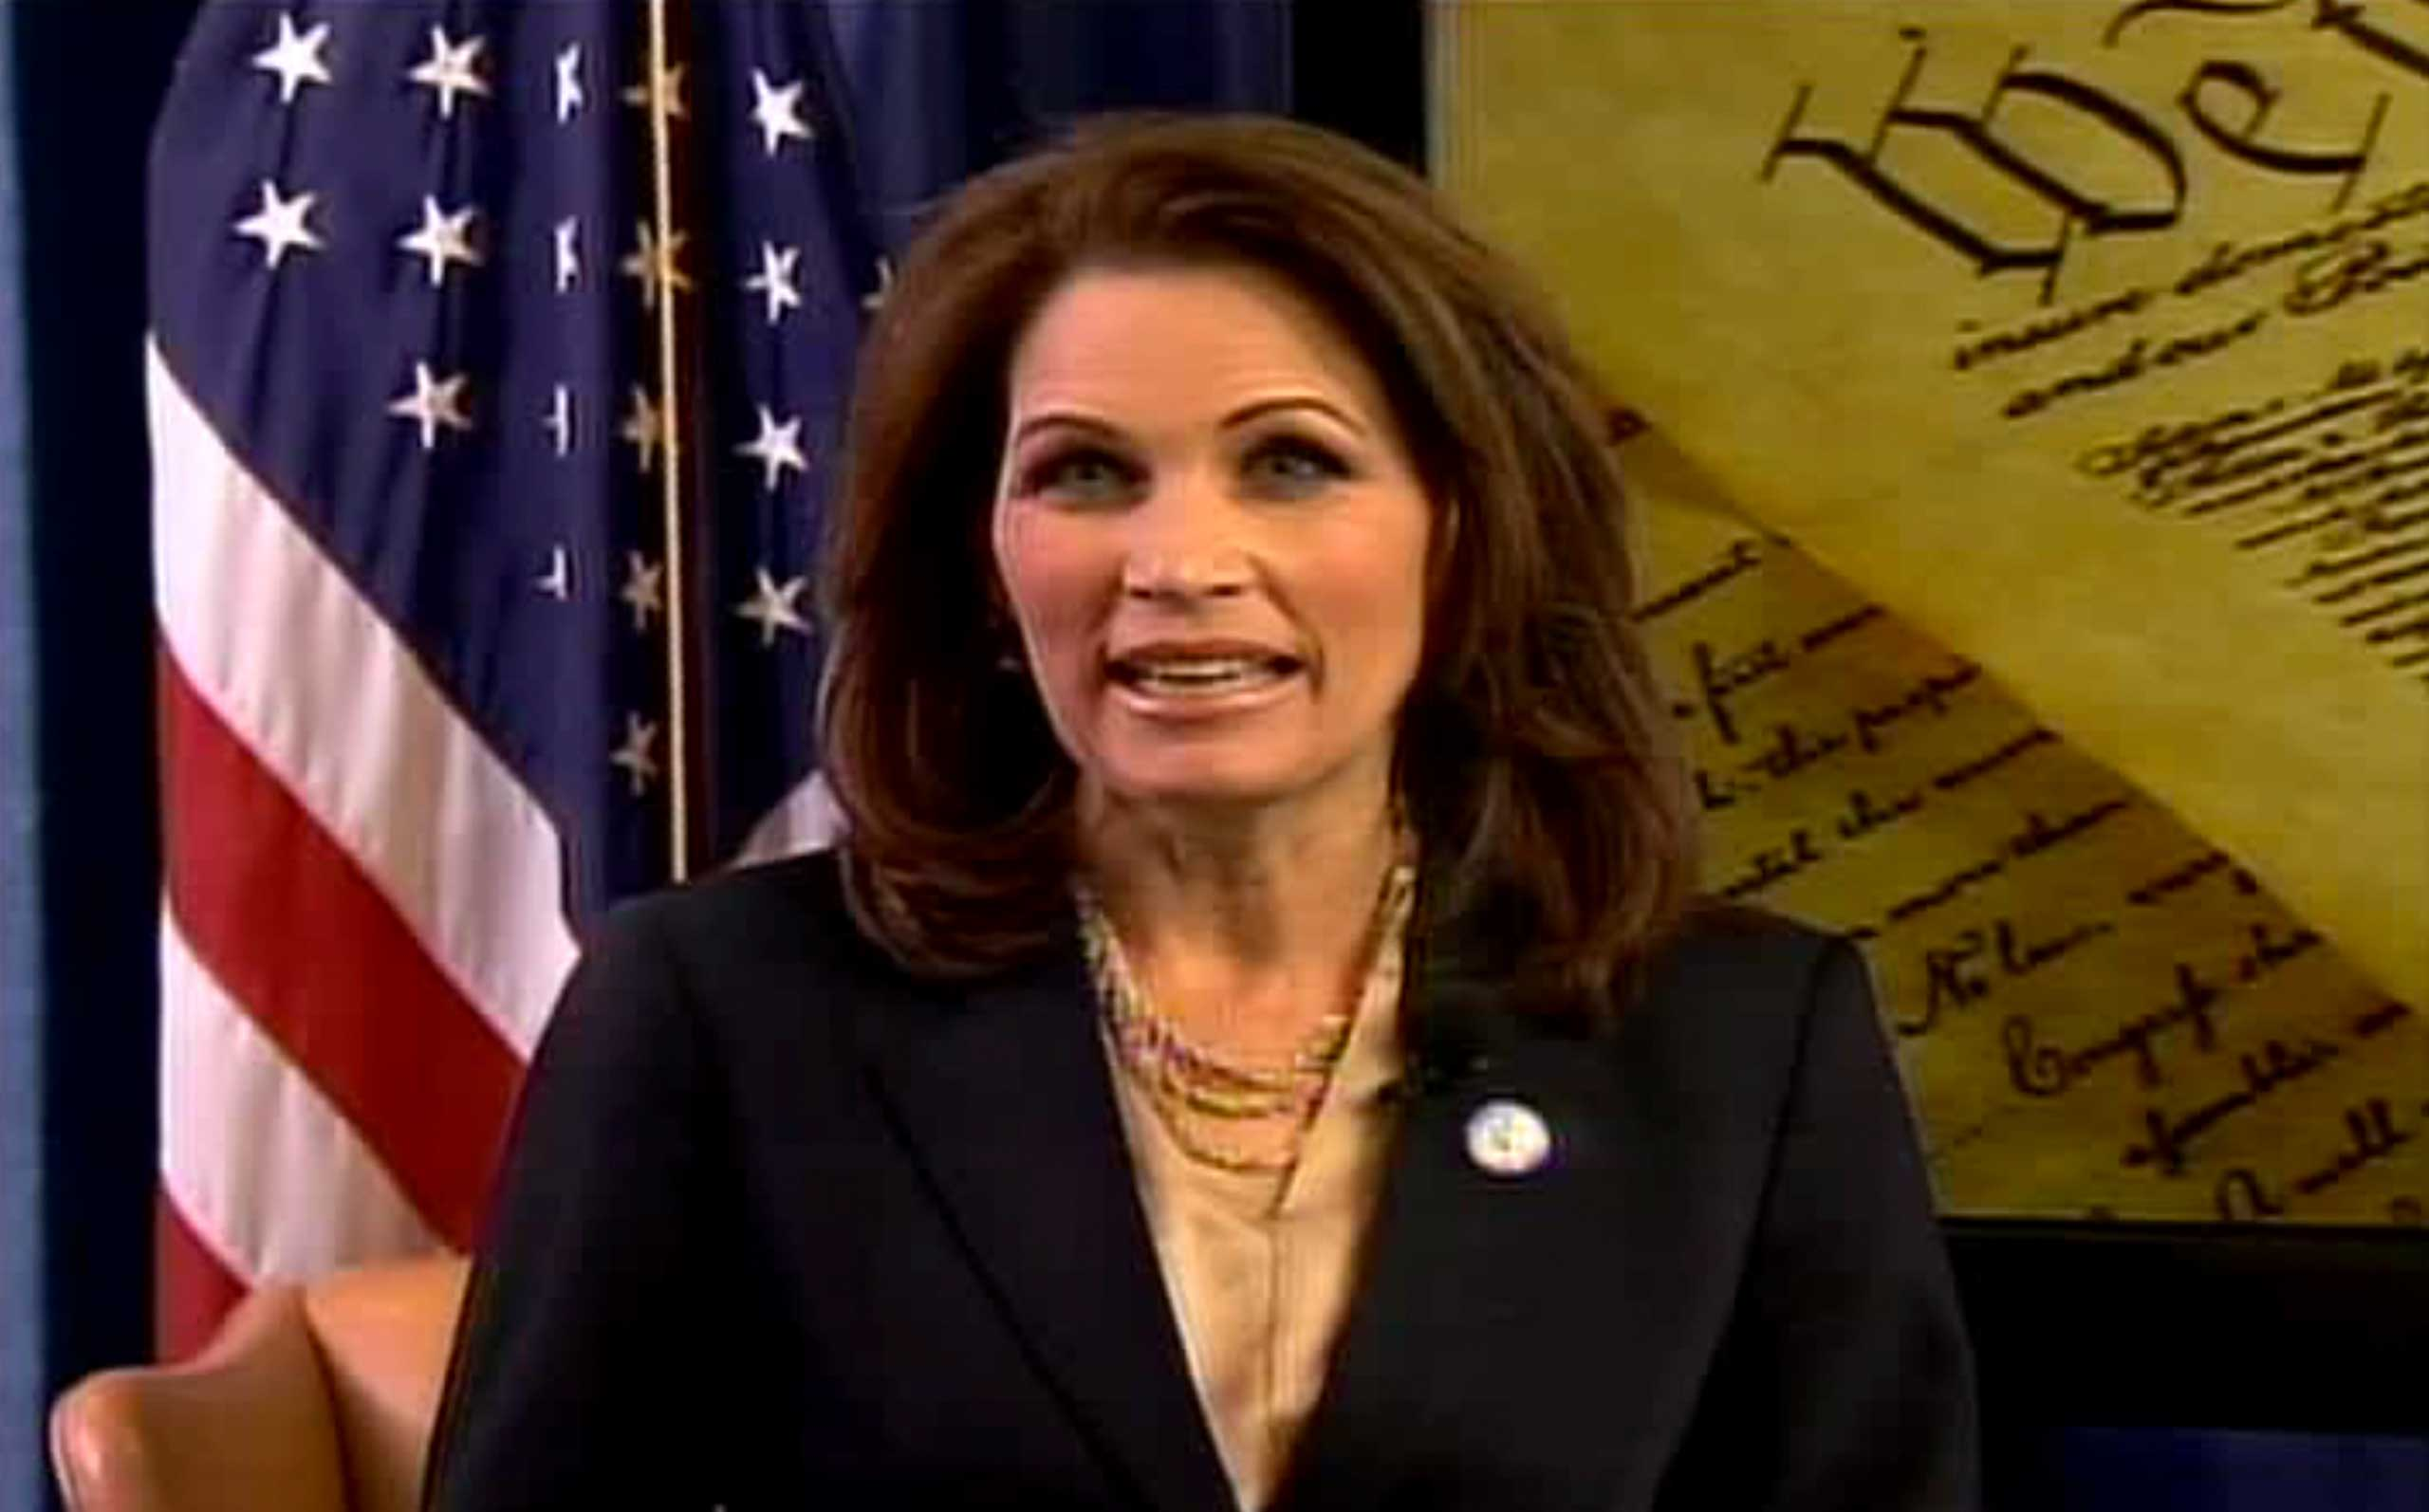 Rep. Michele Bachmann gave the unofficial tea party response to Obama in 2011. The next year, she came in last in the Iowa presidential caucuses.